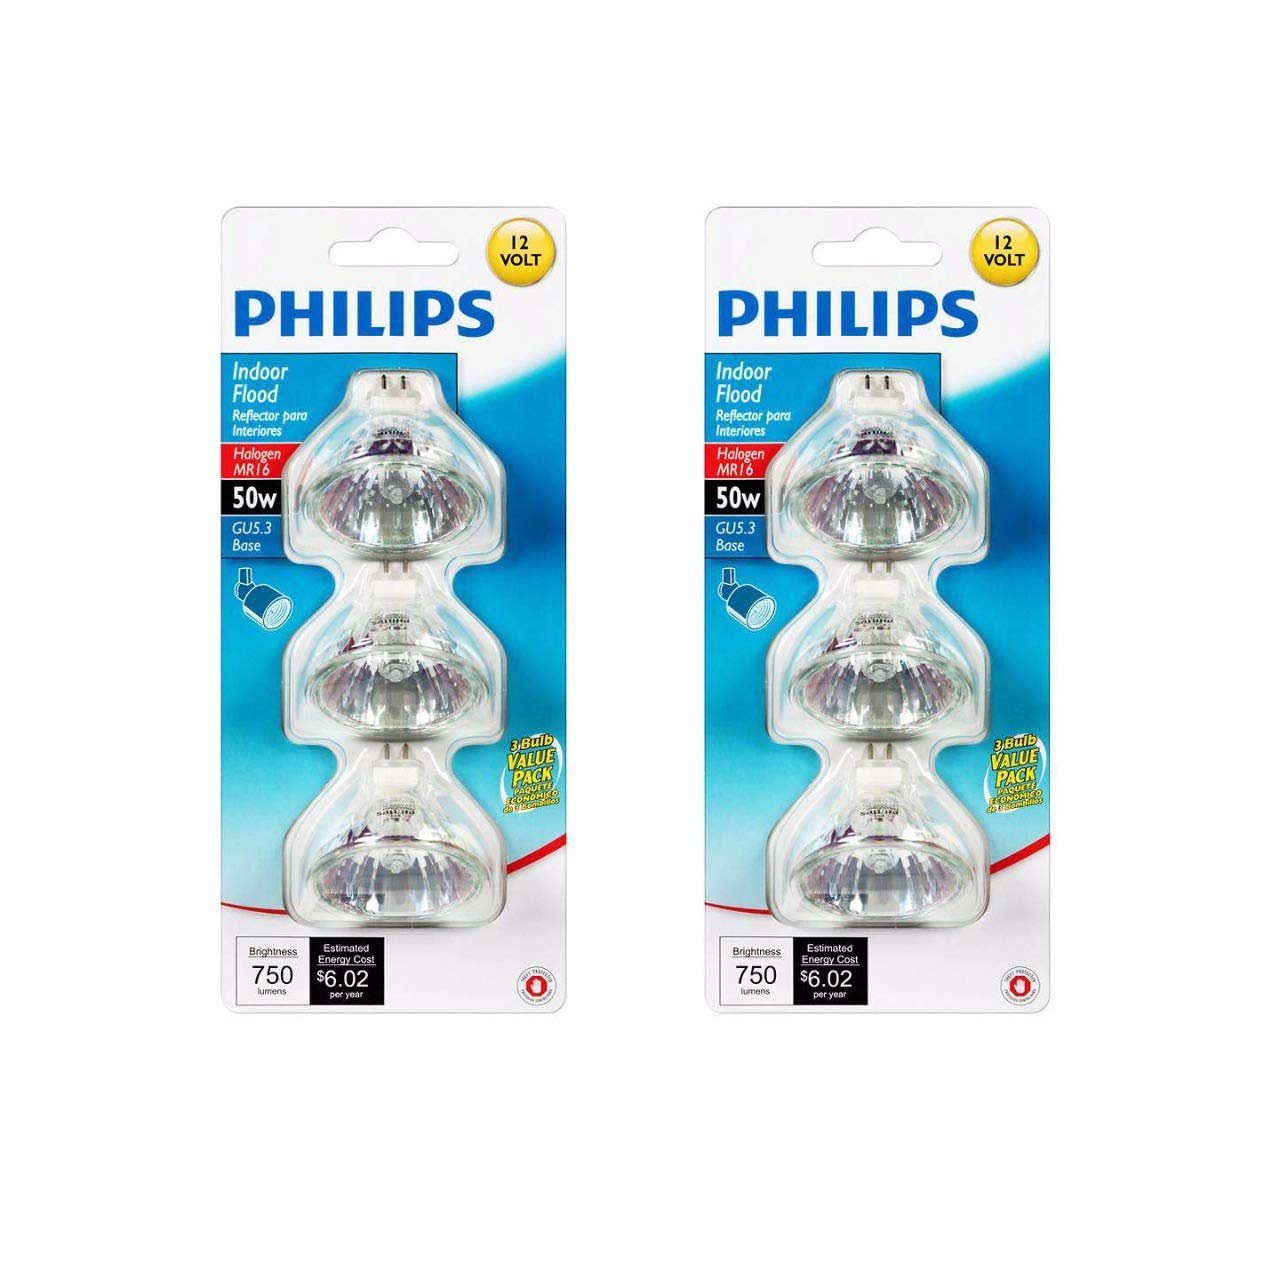 Philips 415802 Landscape and Indoor Flood 50 Watt MR16 12 Volt Light Bulb 3 Pack x 2